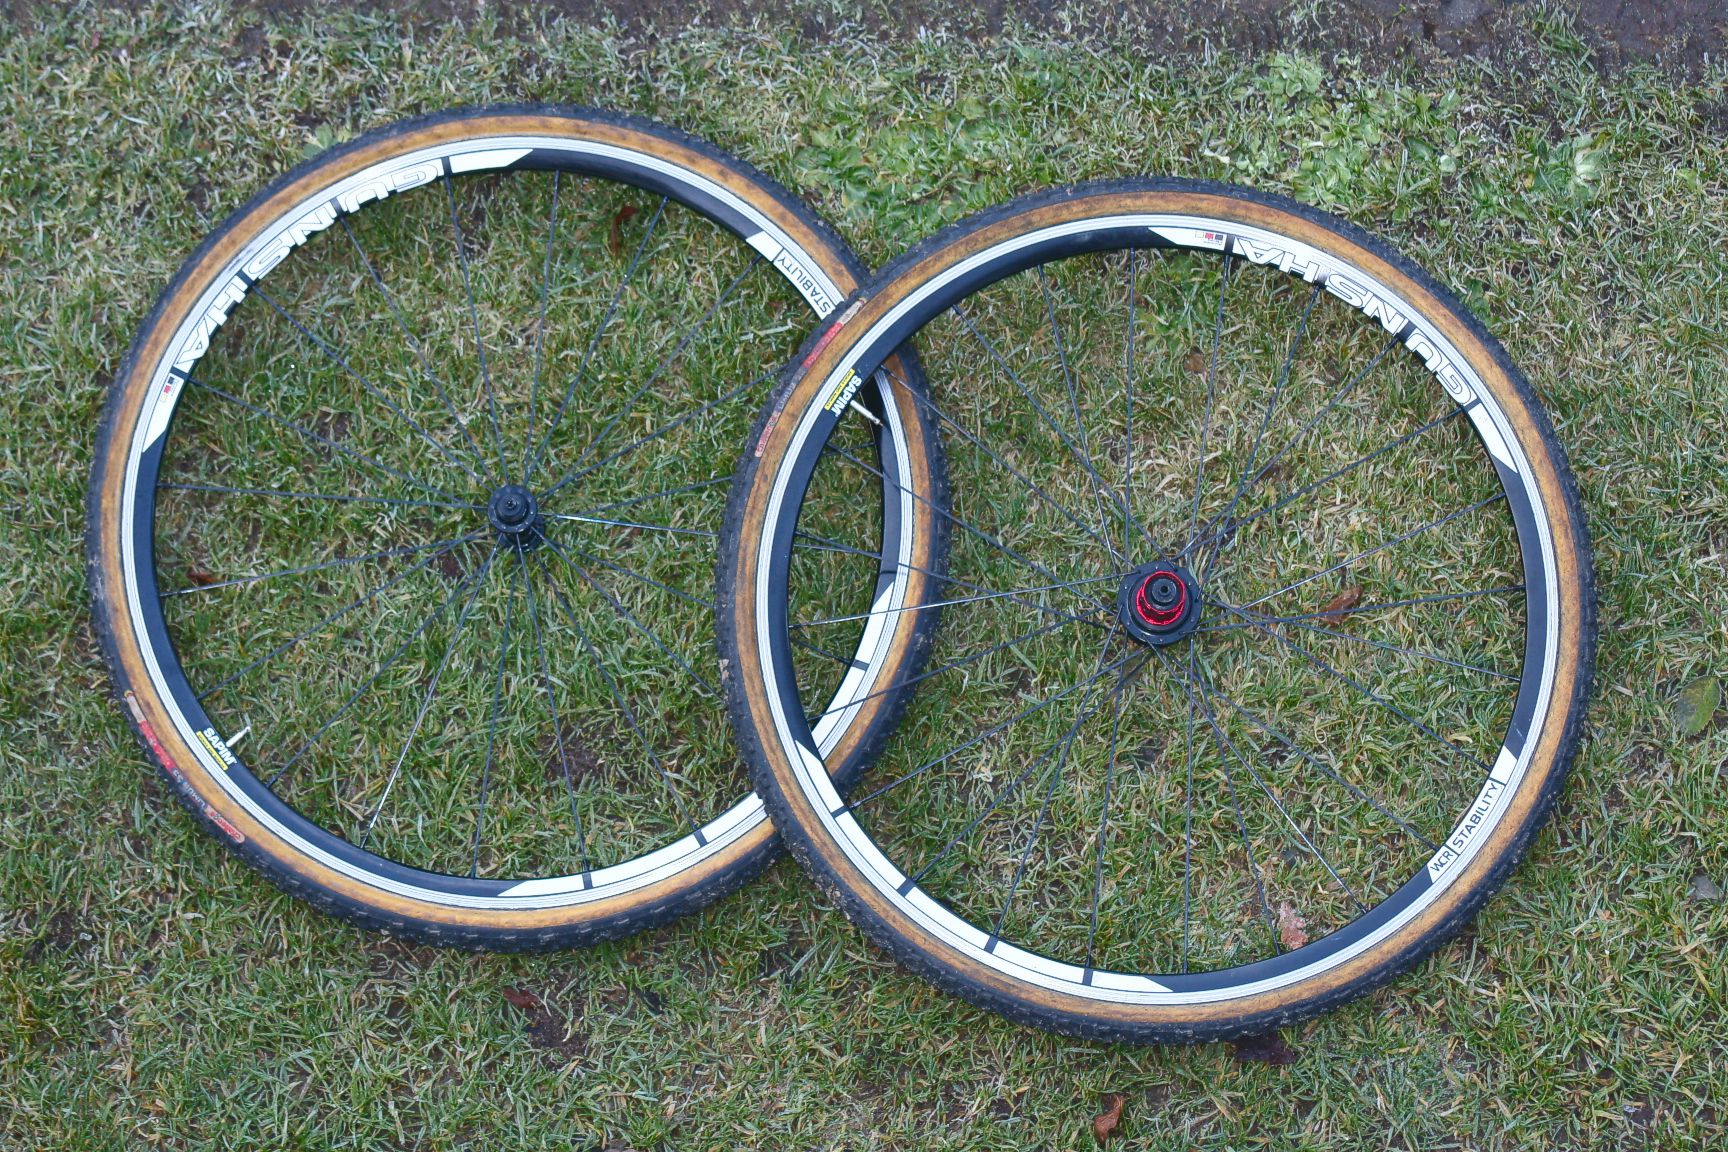 WCR Alloy Stability Tubular incl. Challenge Limus Reifen.